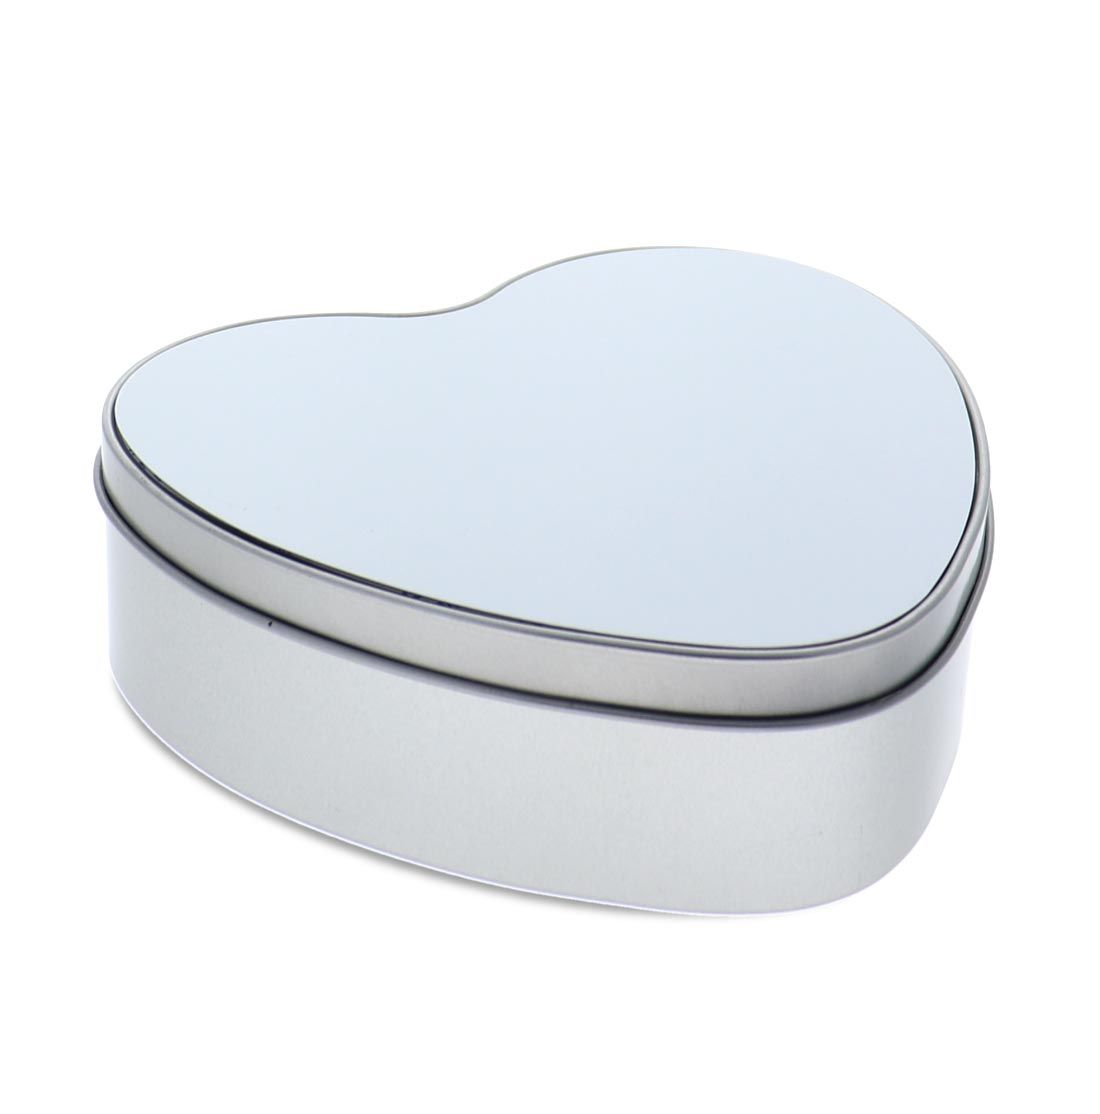 Heart Shaped Box for Sublimation Gift Tin - Daisy Lane Company